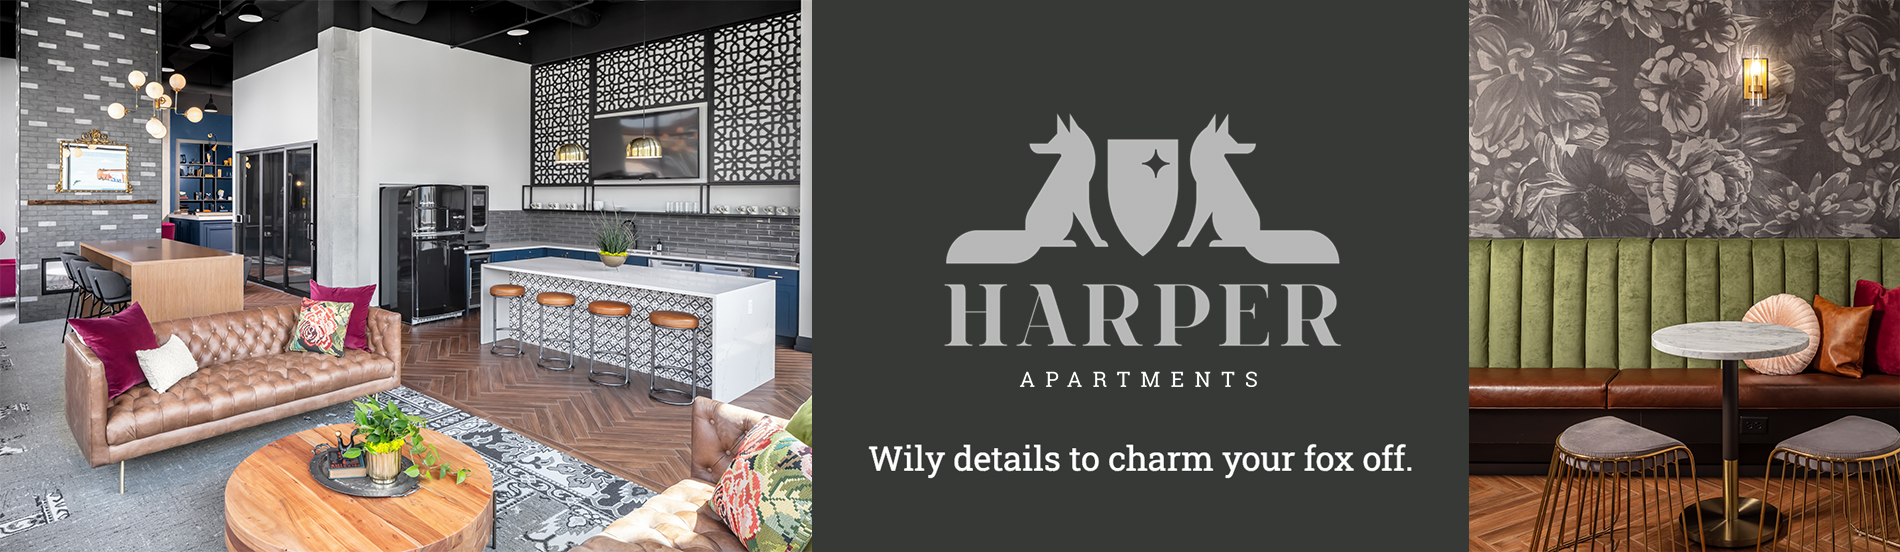 Harper Apartments Saint Paul Ryan Companies Interior Design